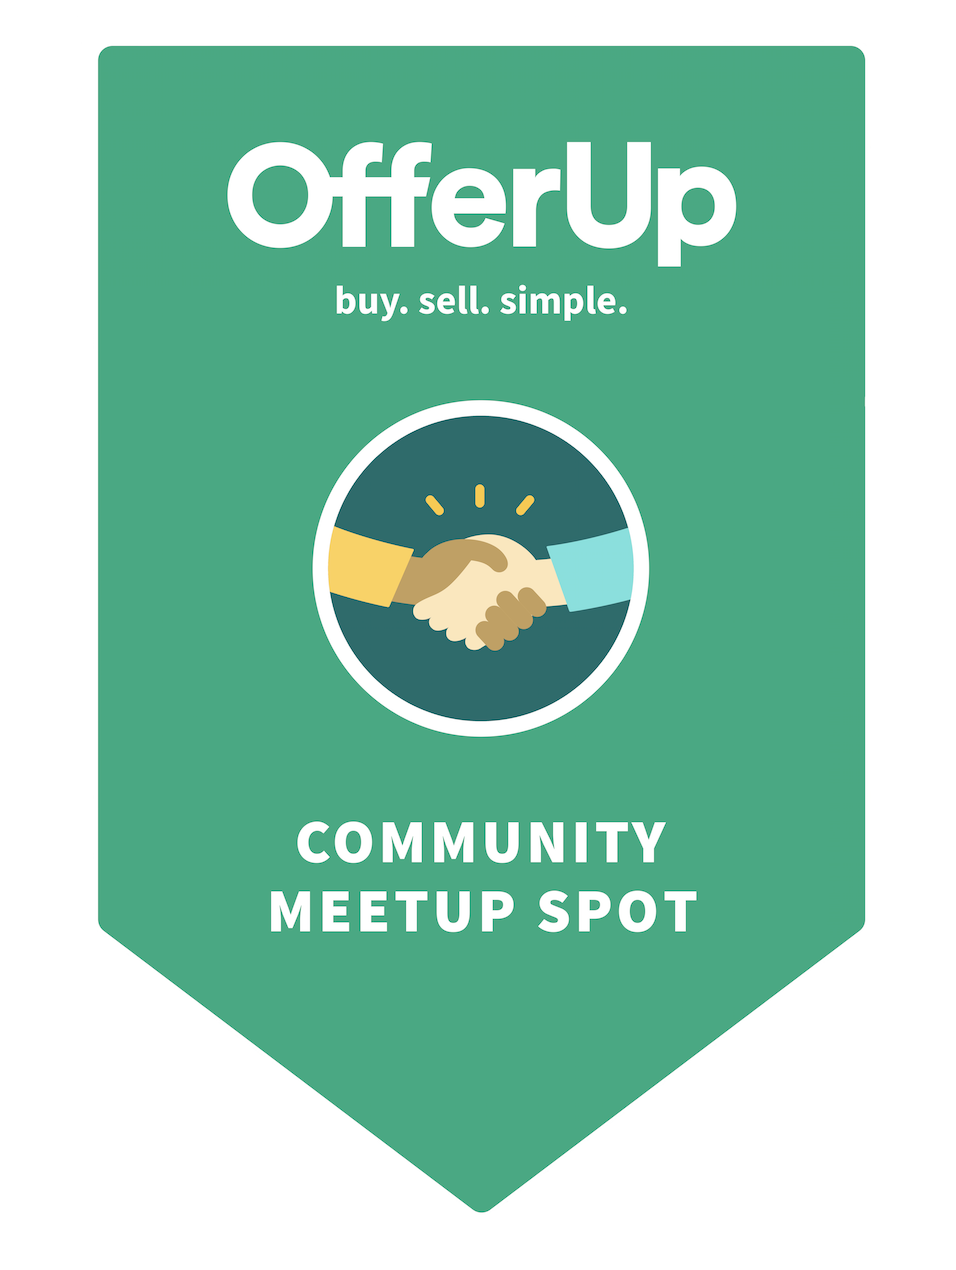 Picture of a green MeetUp Spot sign